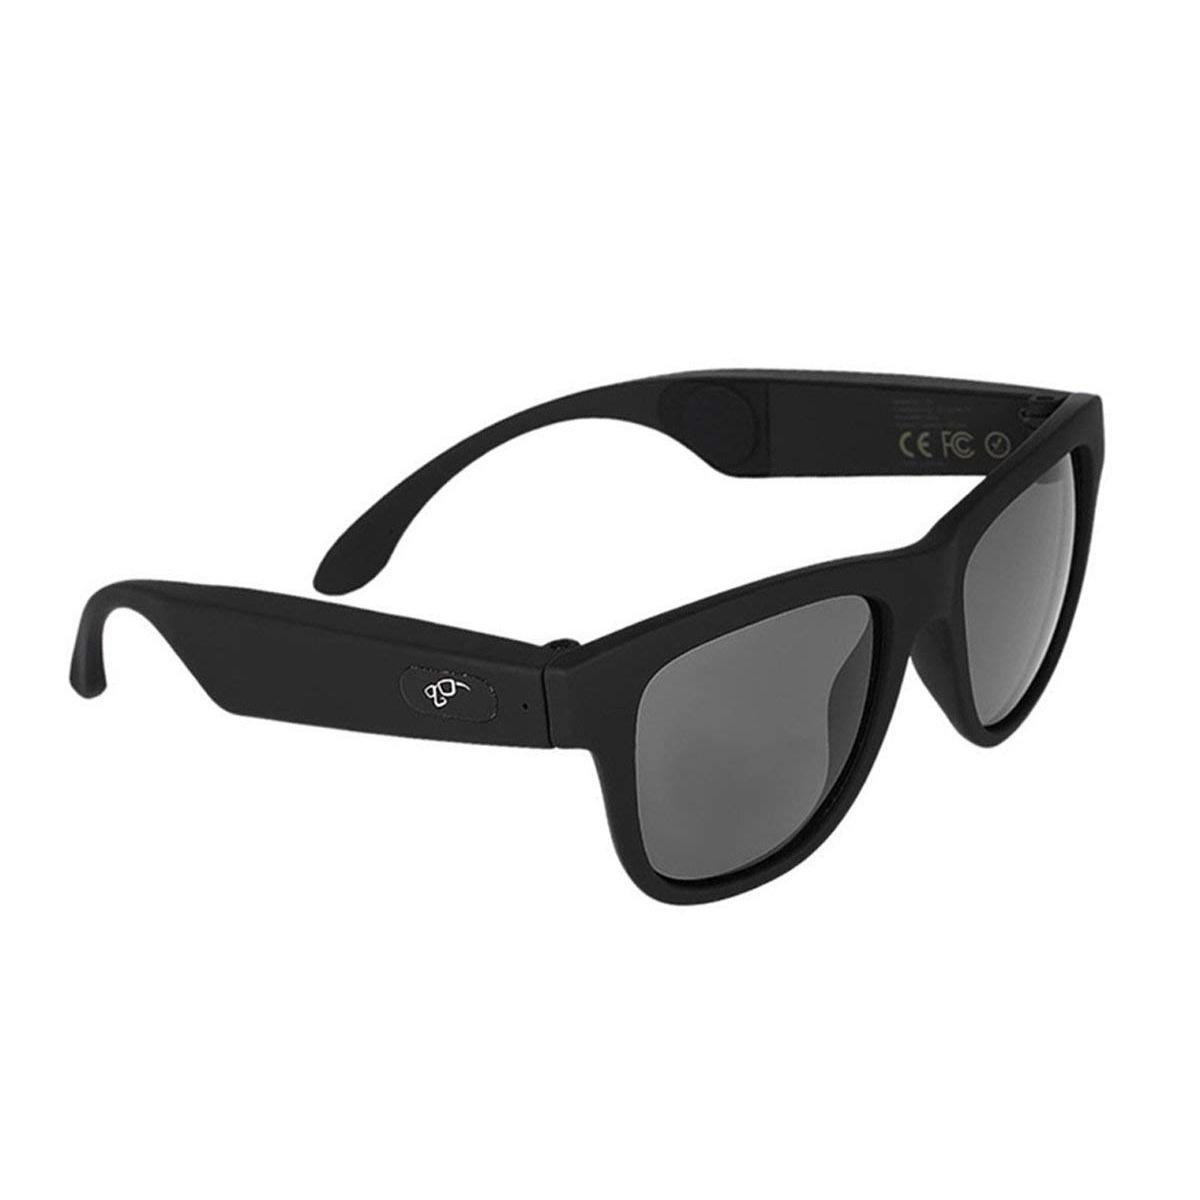 G1 Glasses Bone Conduction Headphone Ear Carer Touch Panel Filter UV Ray  Sunglasses Bluetooth 4.0 Headset  black